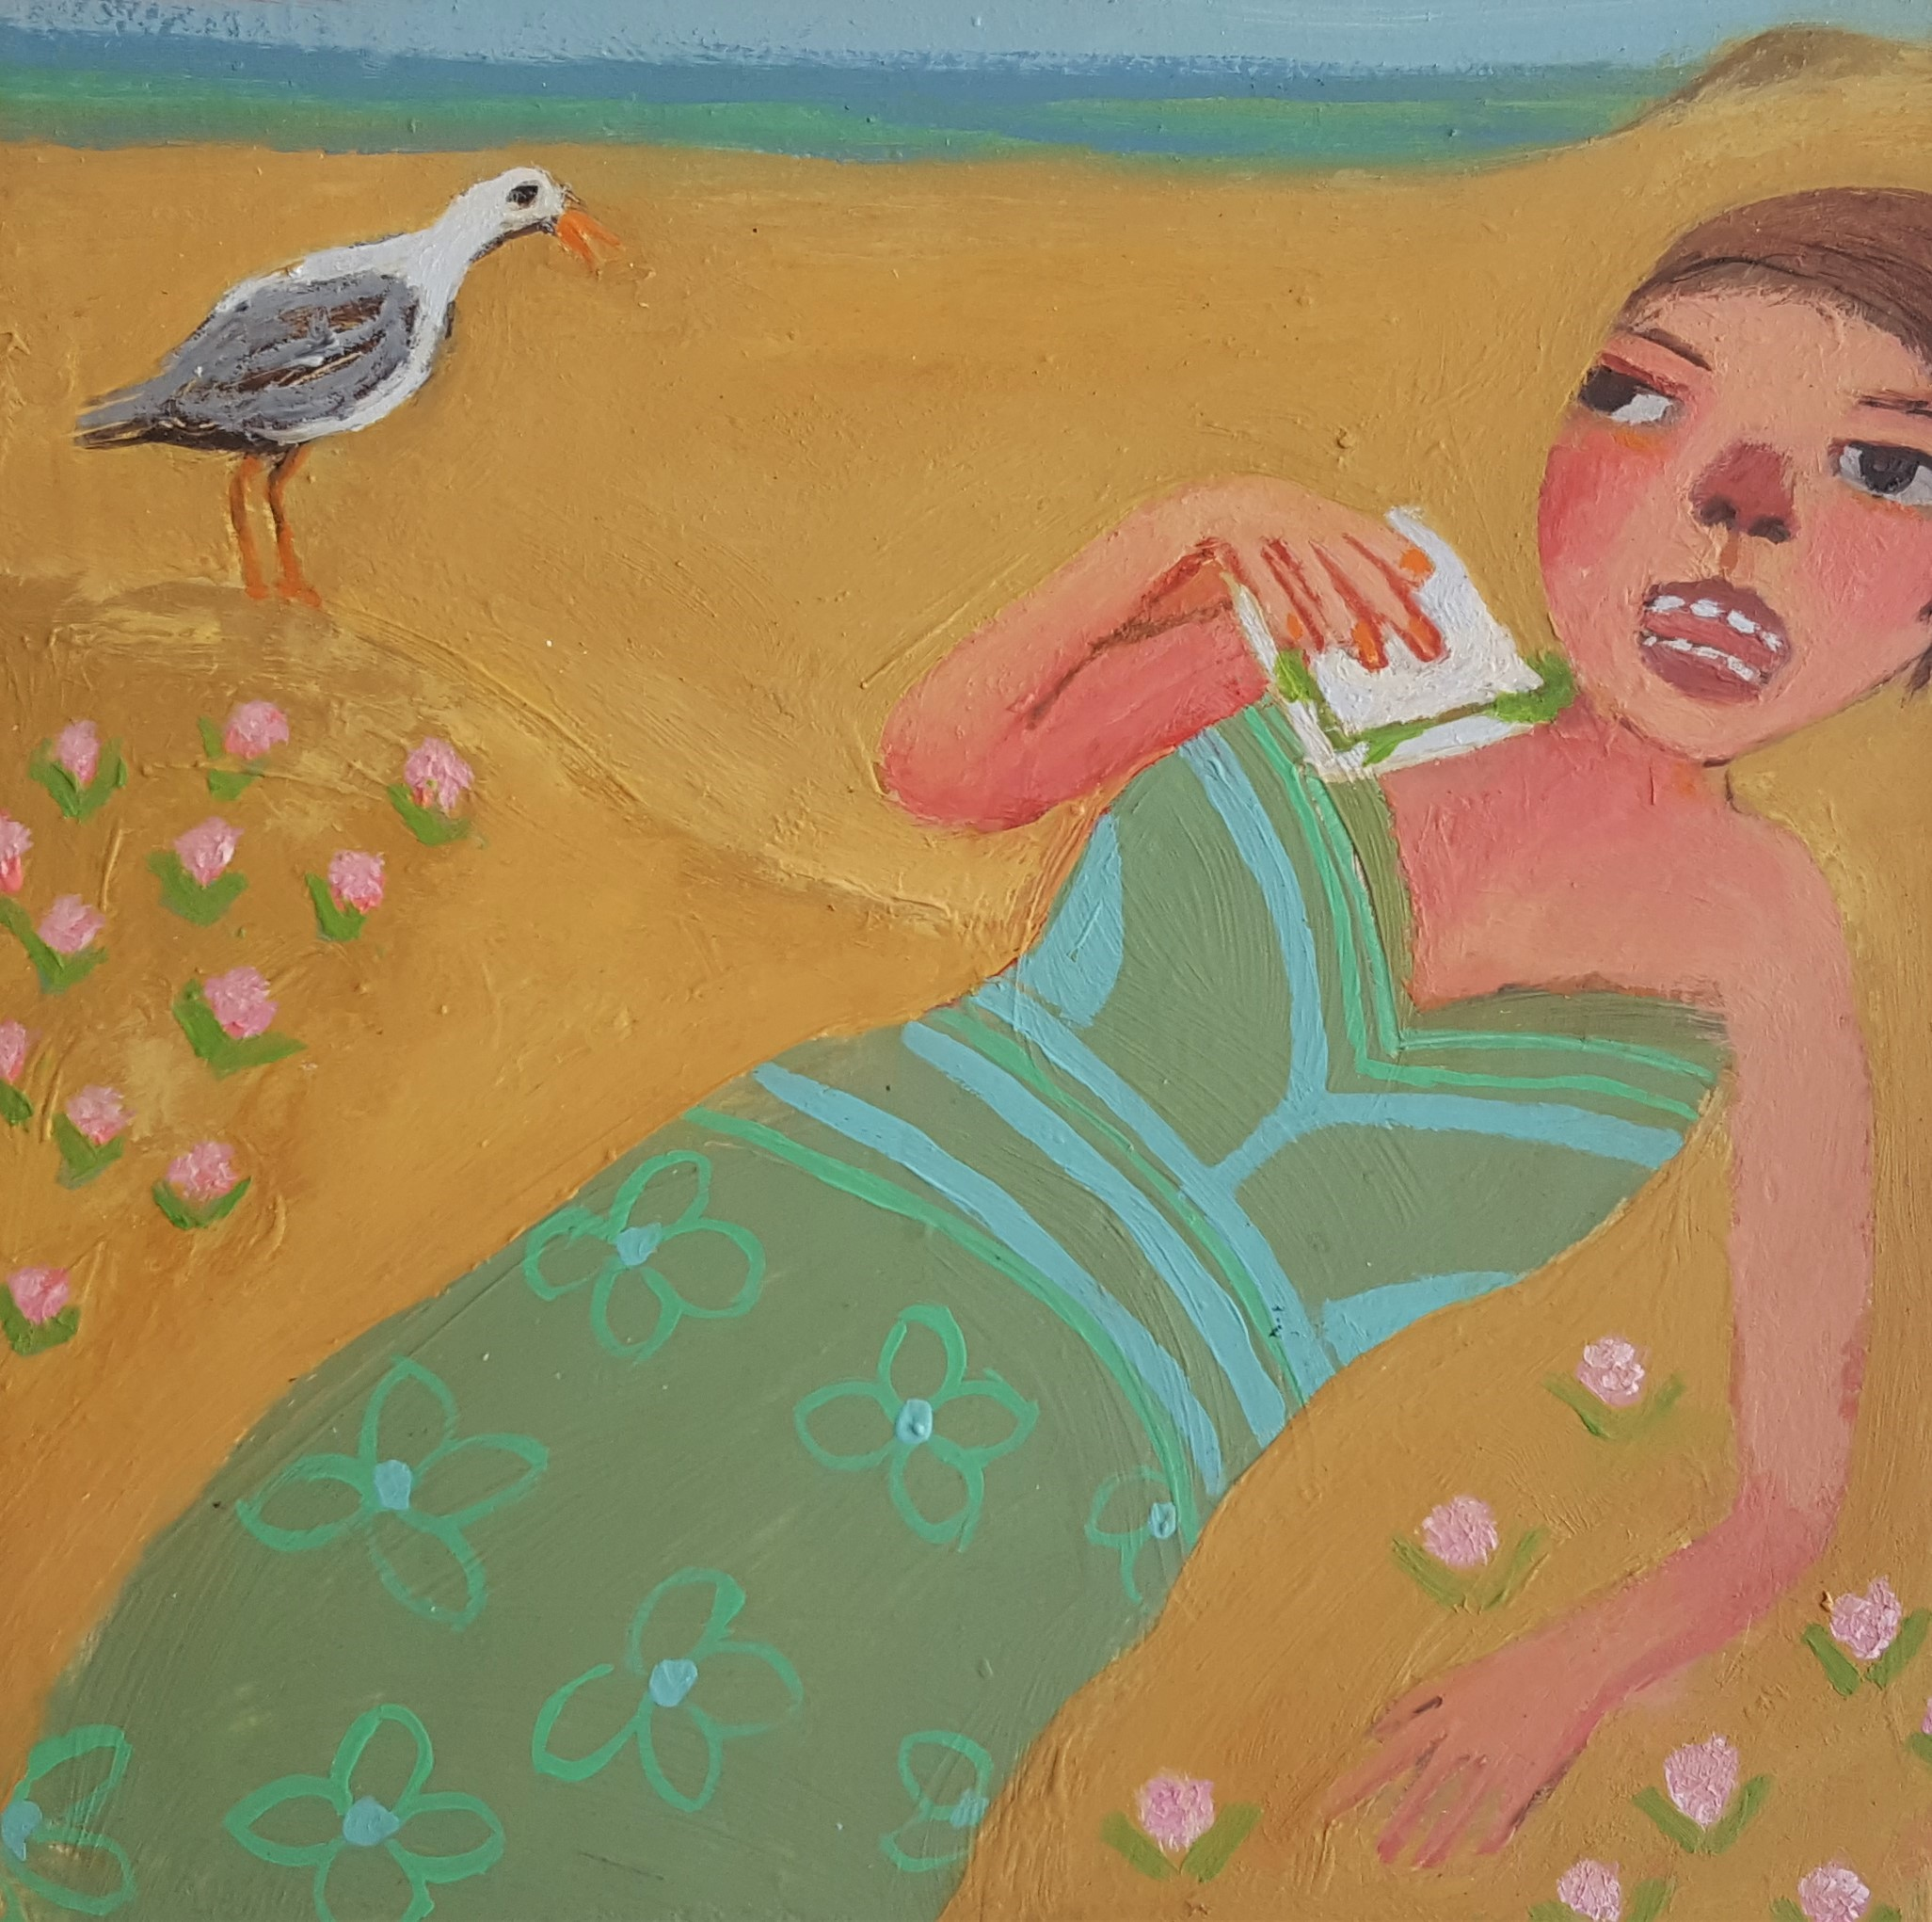 'Sandwich Thief' by Siobhan Purdy, shown at the Byre Gallery